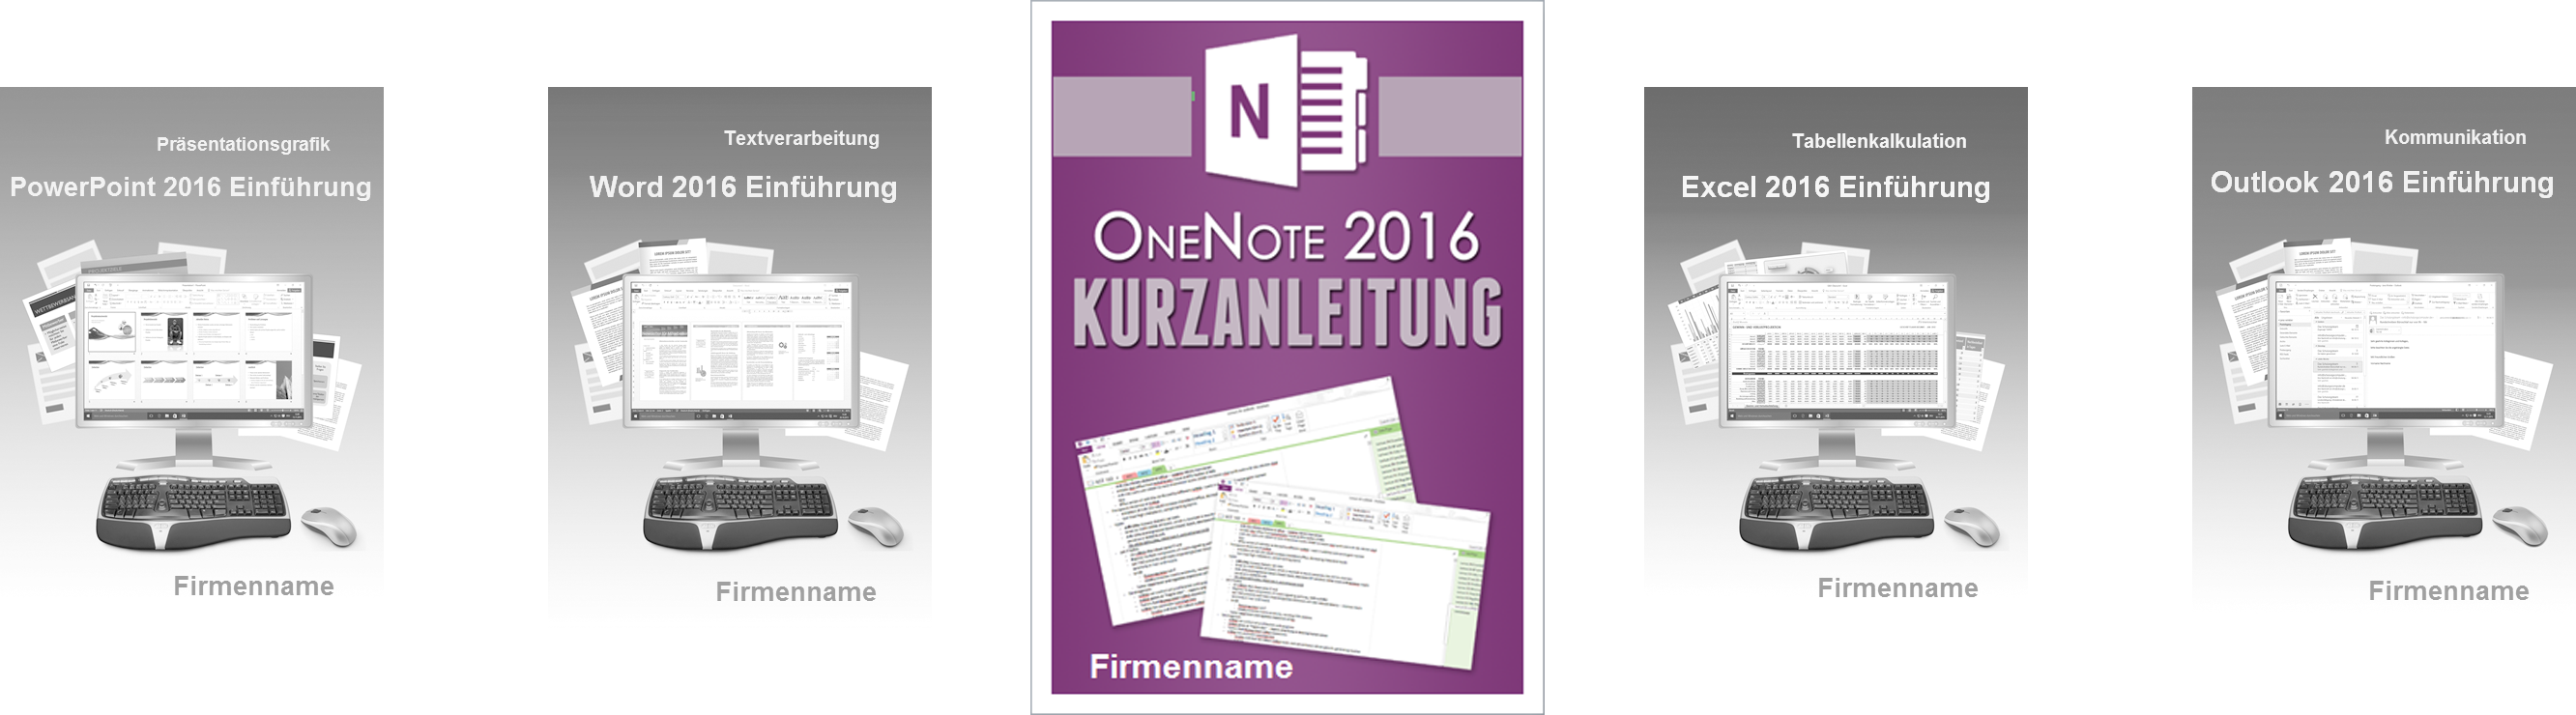 how to use microsoft onenote 2016